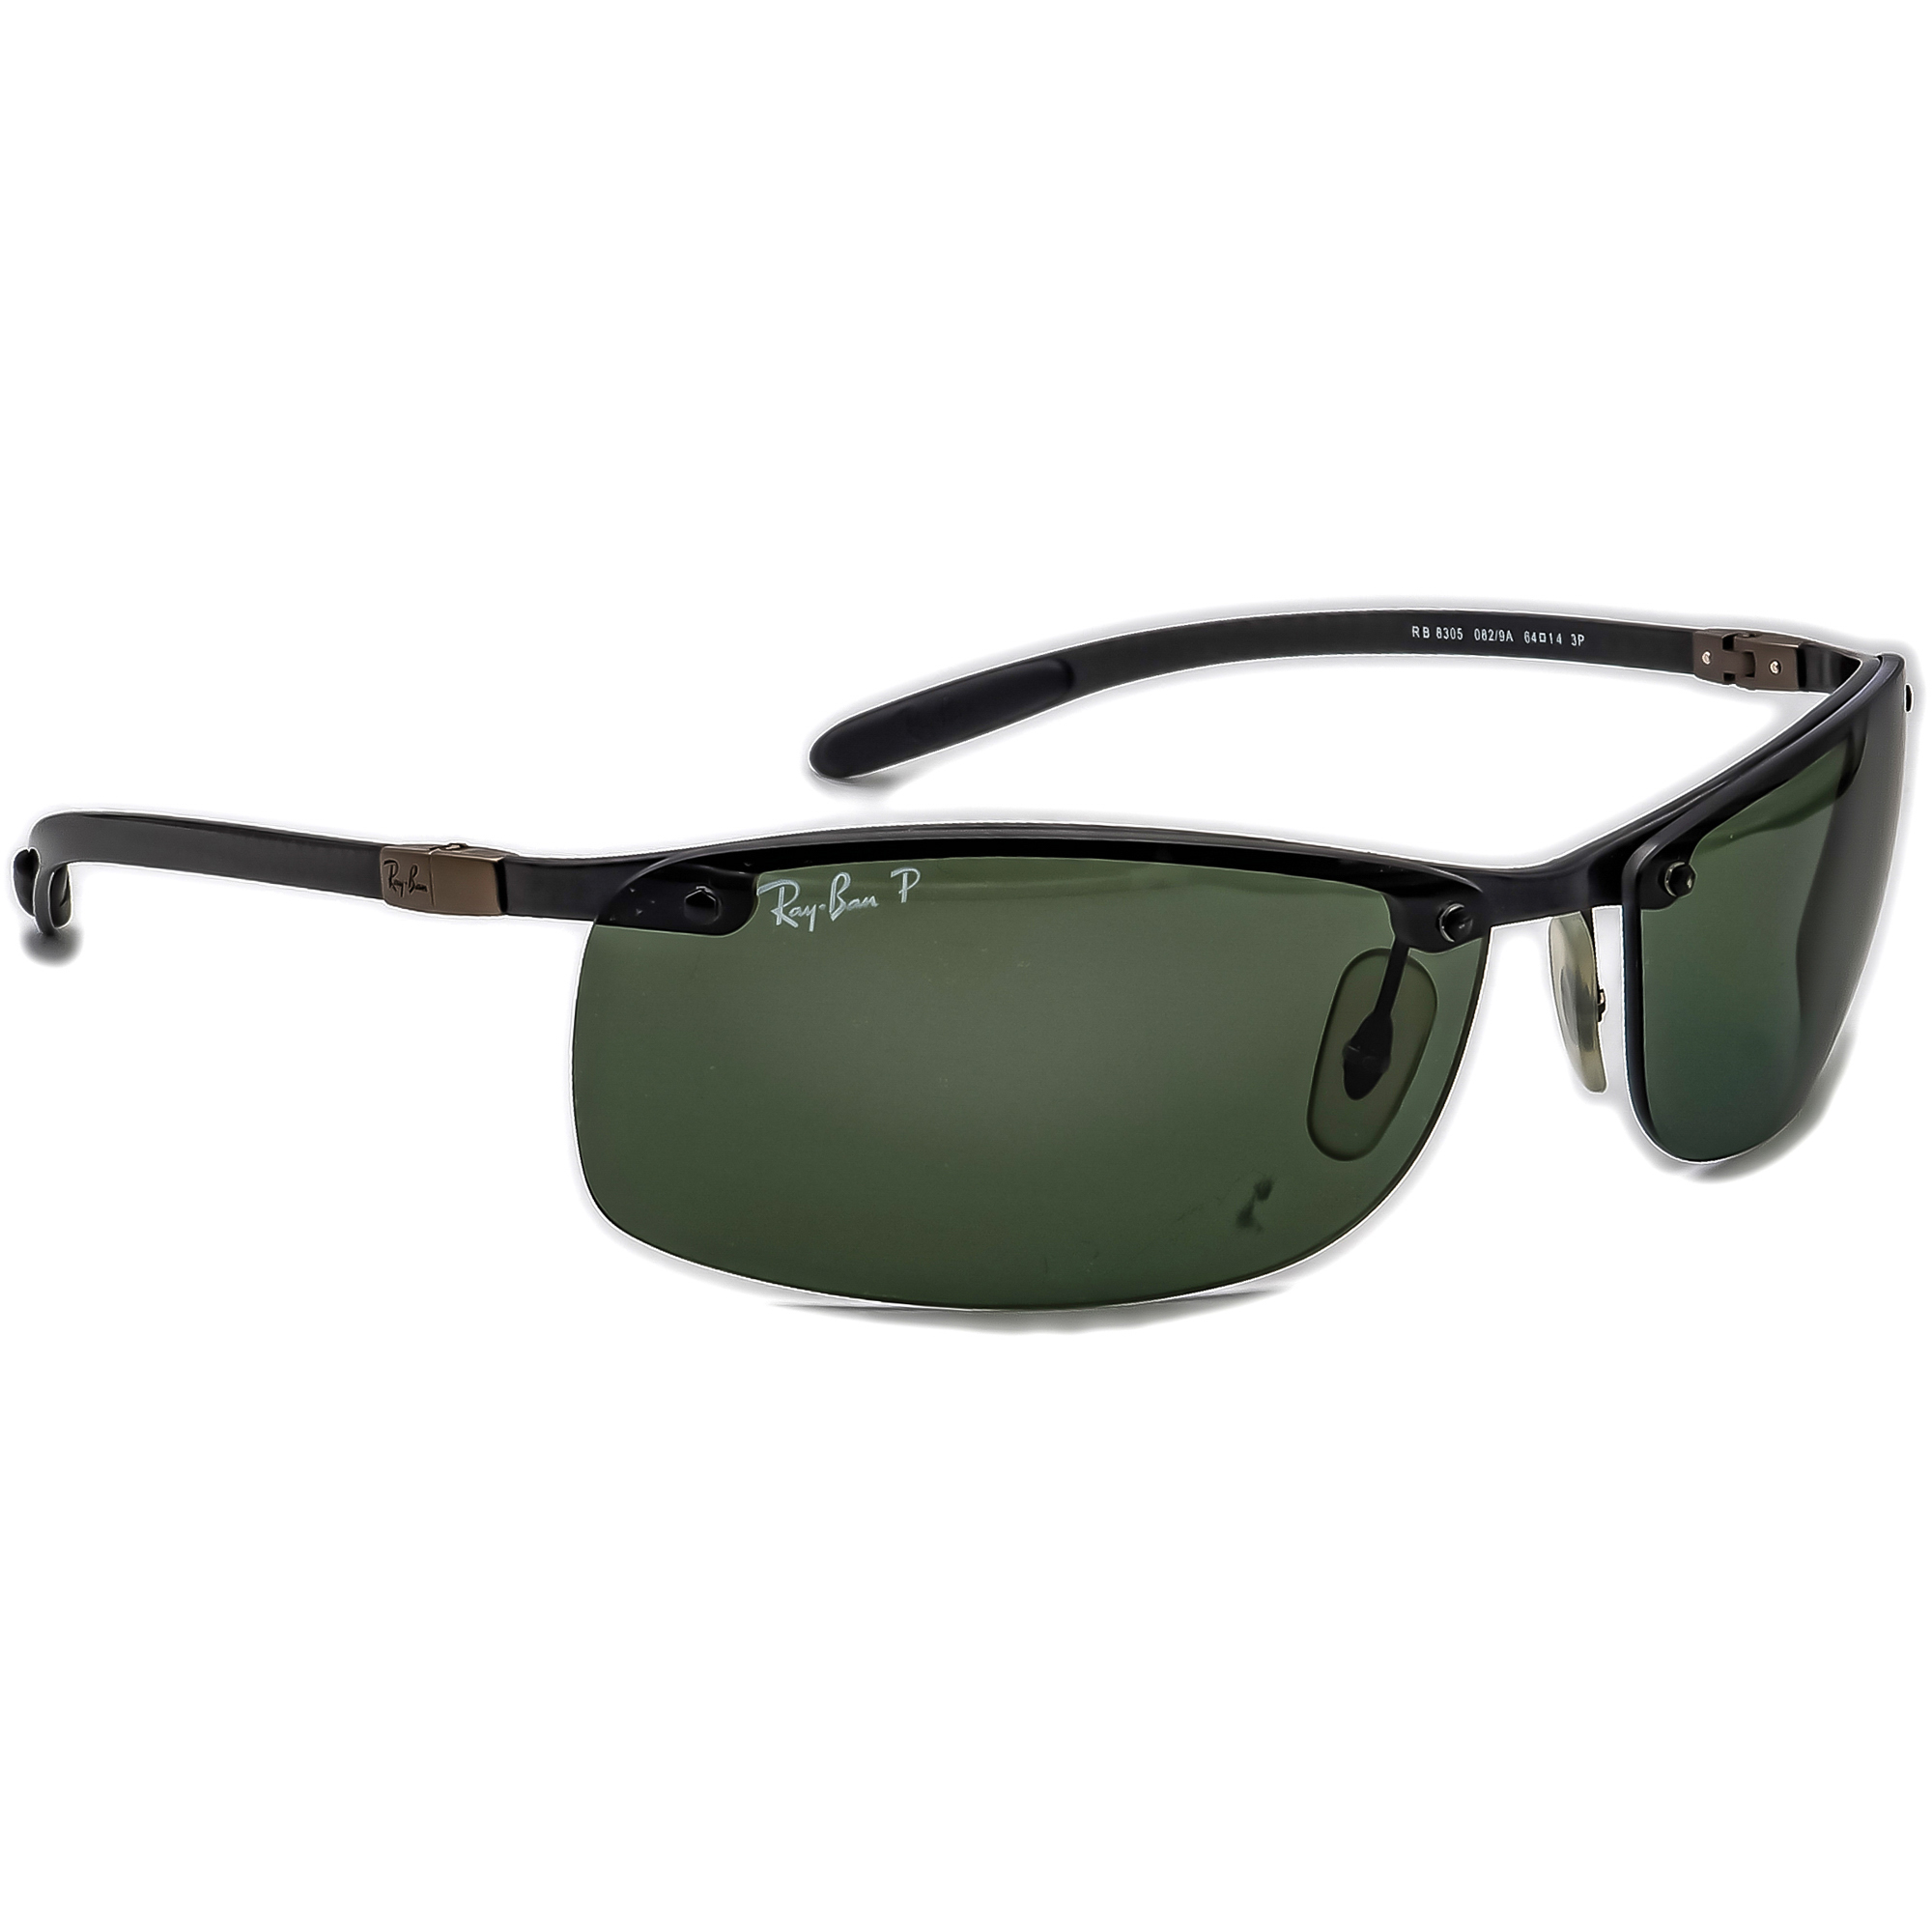 Ray-Ban RB 8305 082/9A Carbon Fiber Sunglasses Frame Only